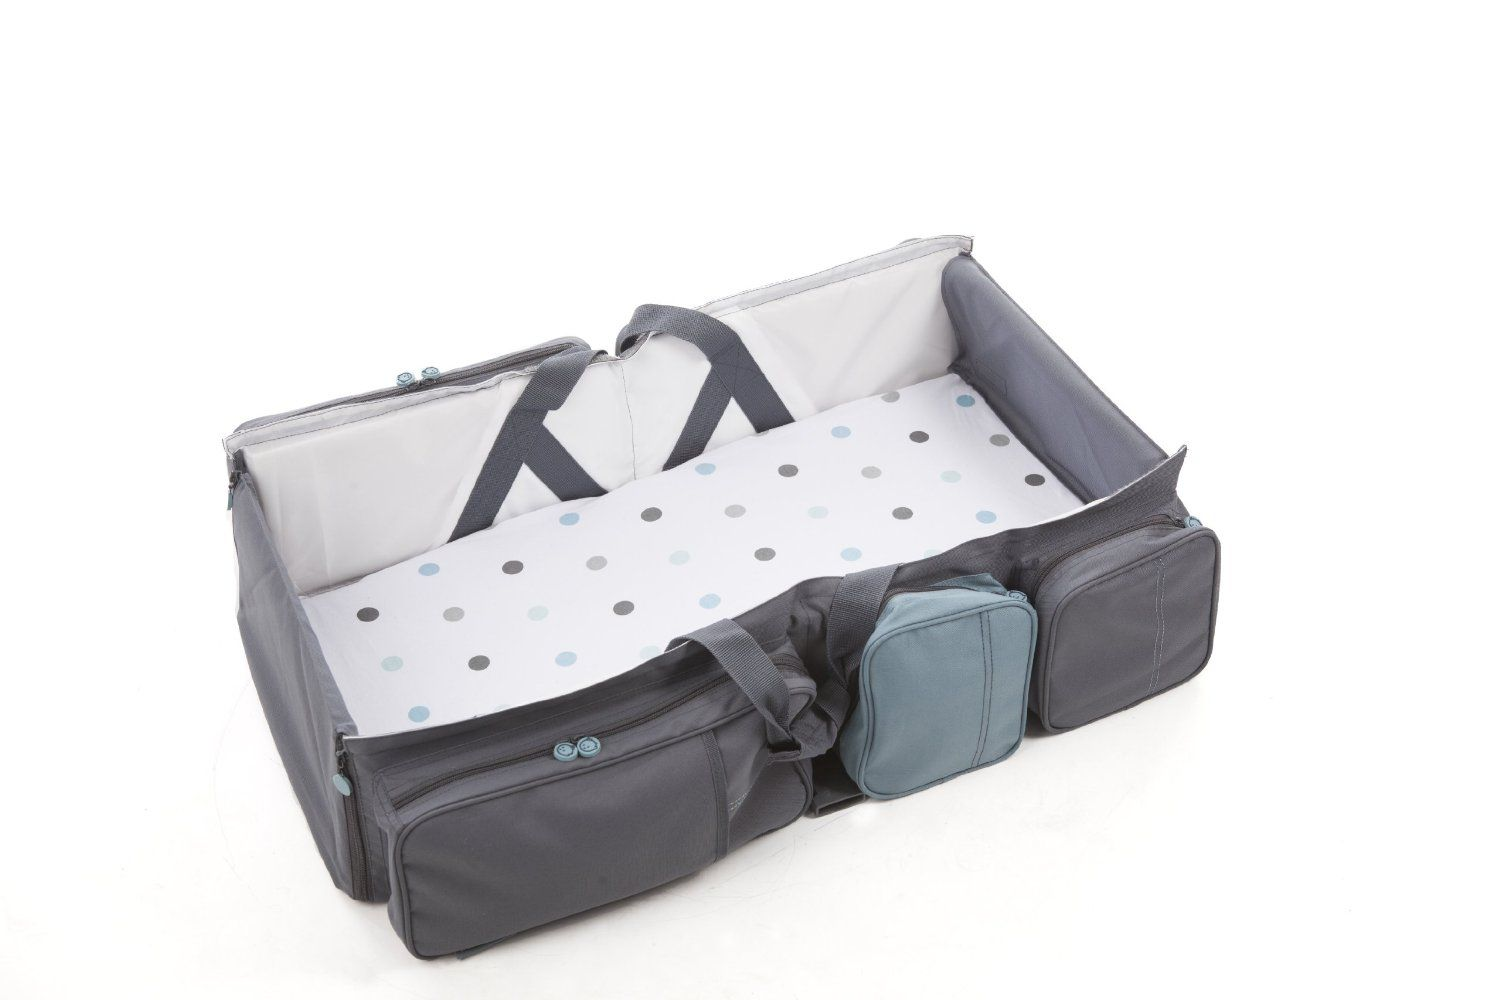 Delta Baby Travel Bag And Carrycot Amazon Co Uk Baby I Want